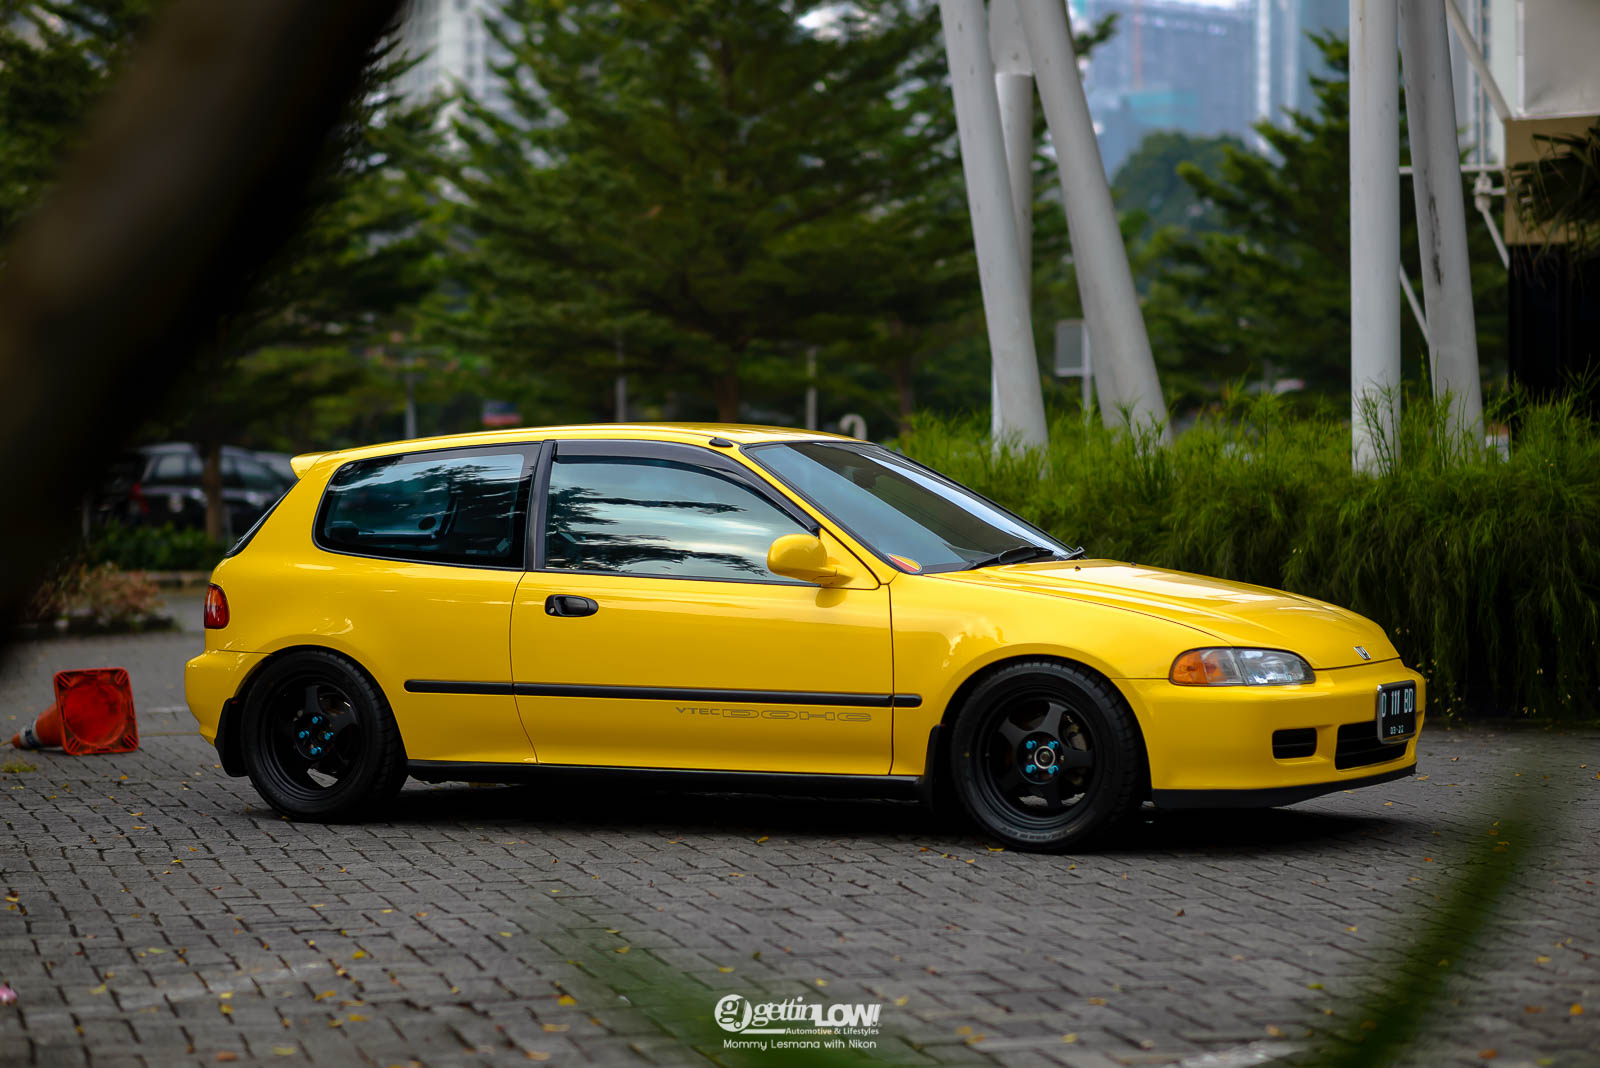 Franklin Honda Civic Estilo